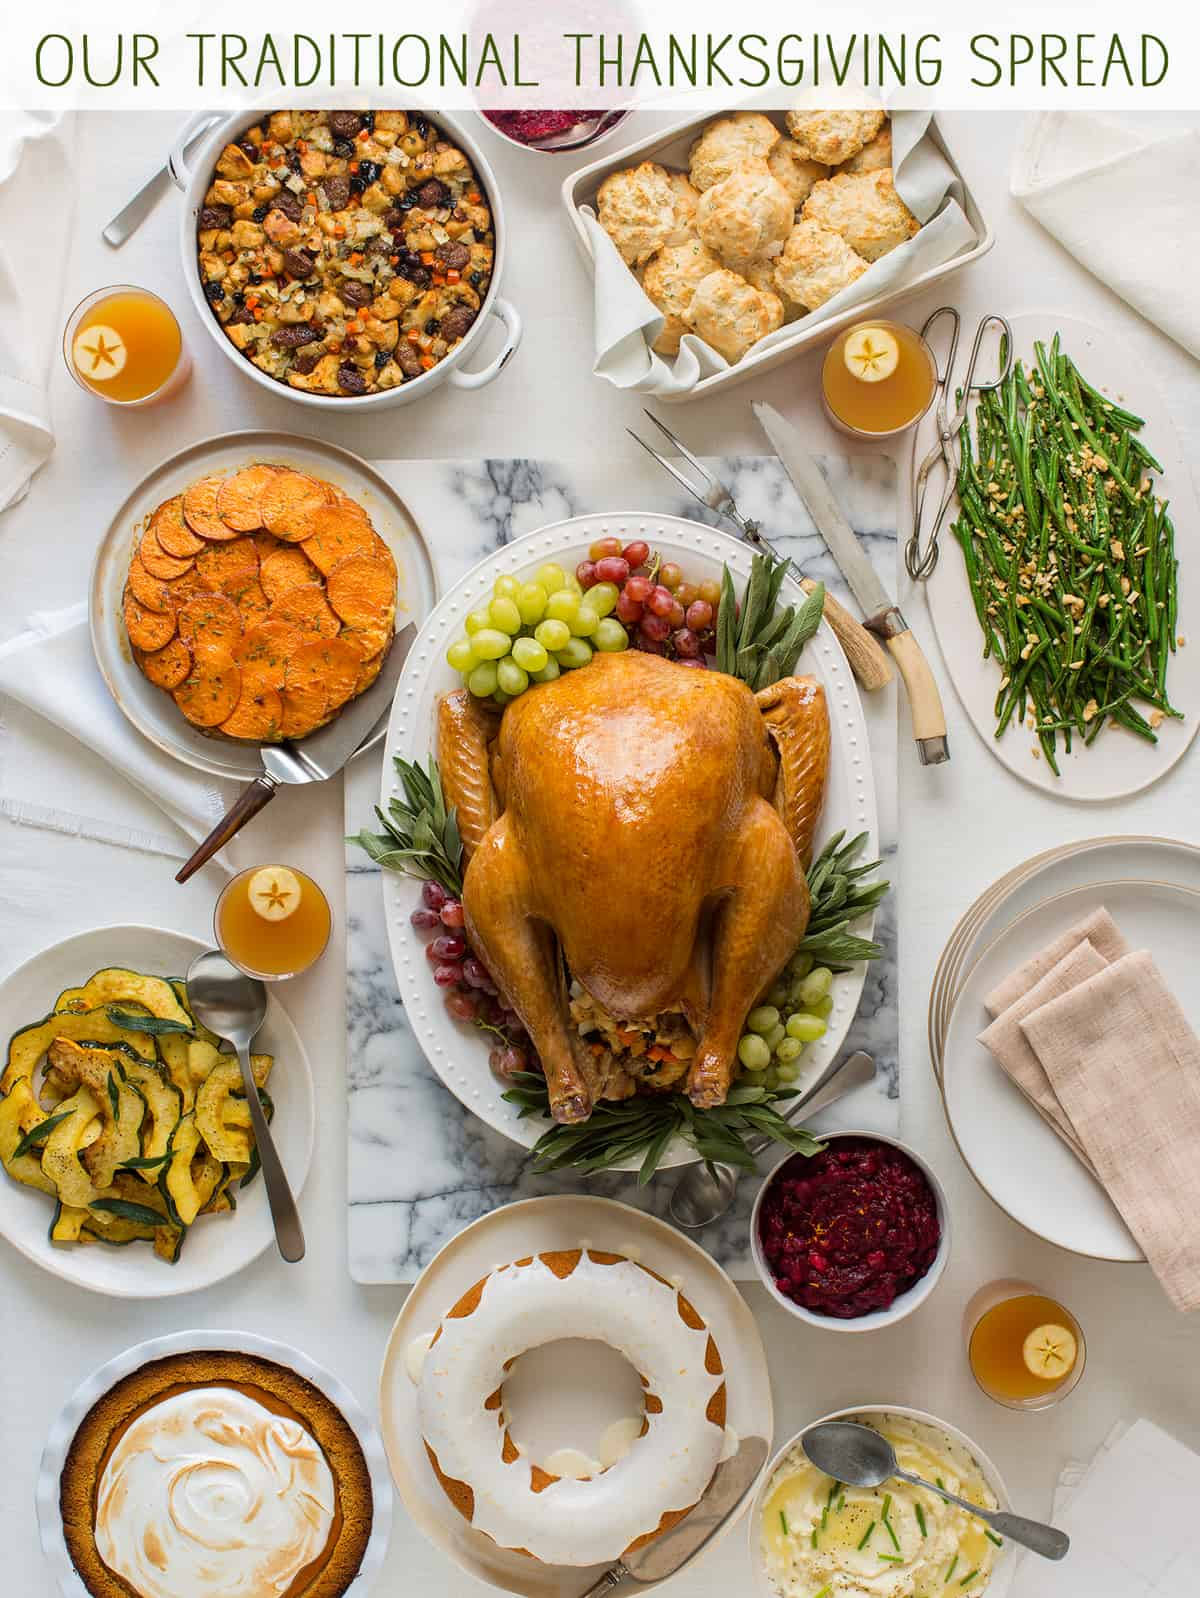 Our traditional thanksgiving spread thanksgiving recipes our traditional thanksgiving spread recipe forumfinder Image collections